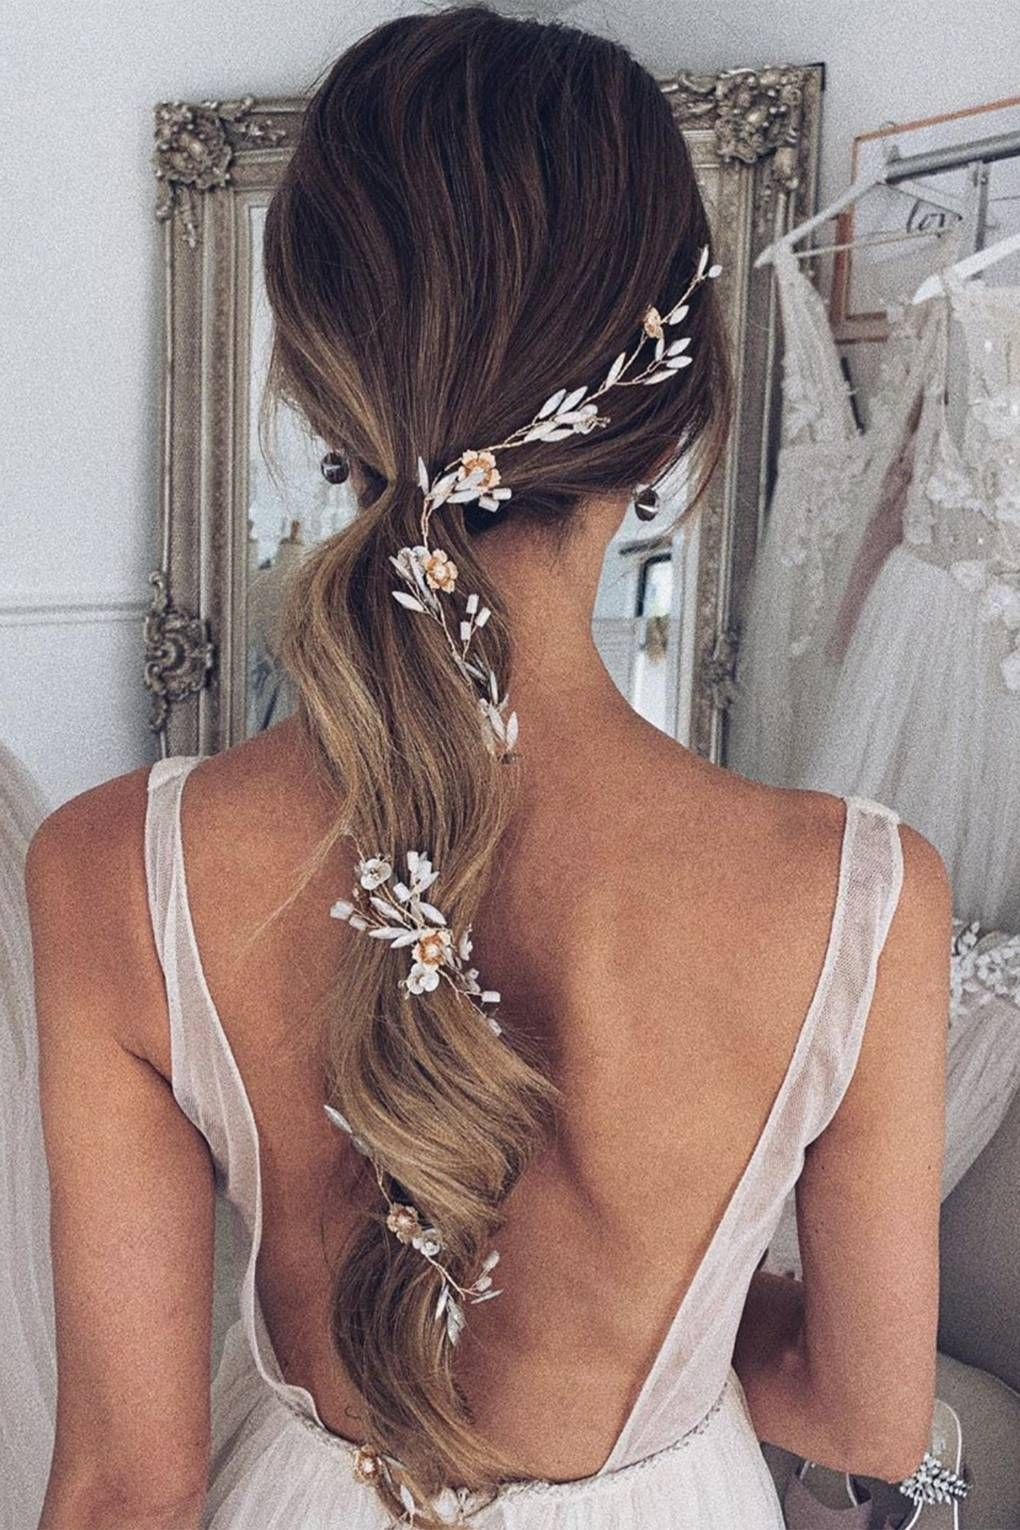 All the wedding hair inspiration you need to find a style you'll love